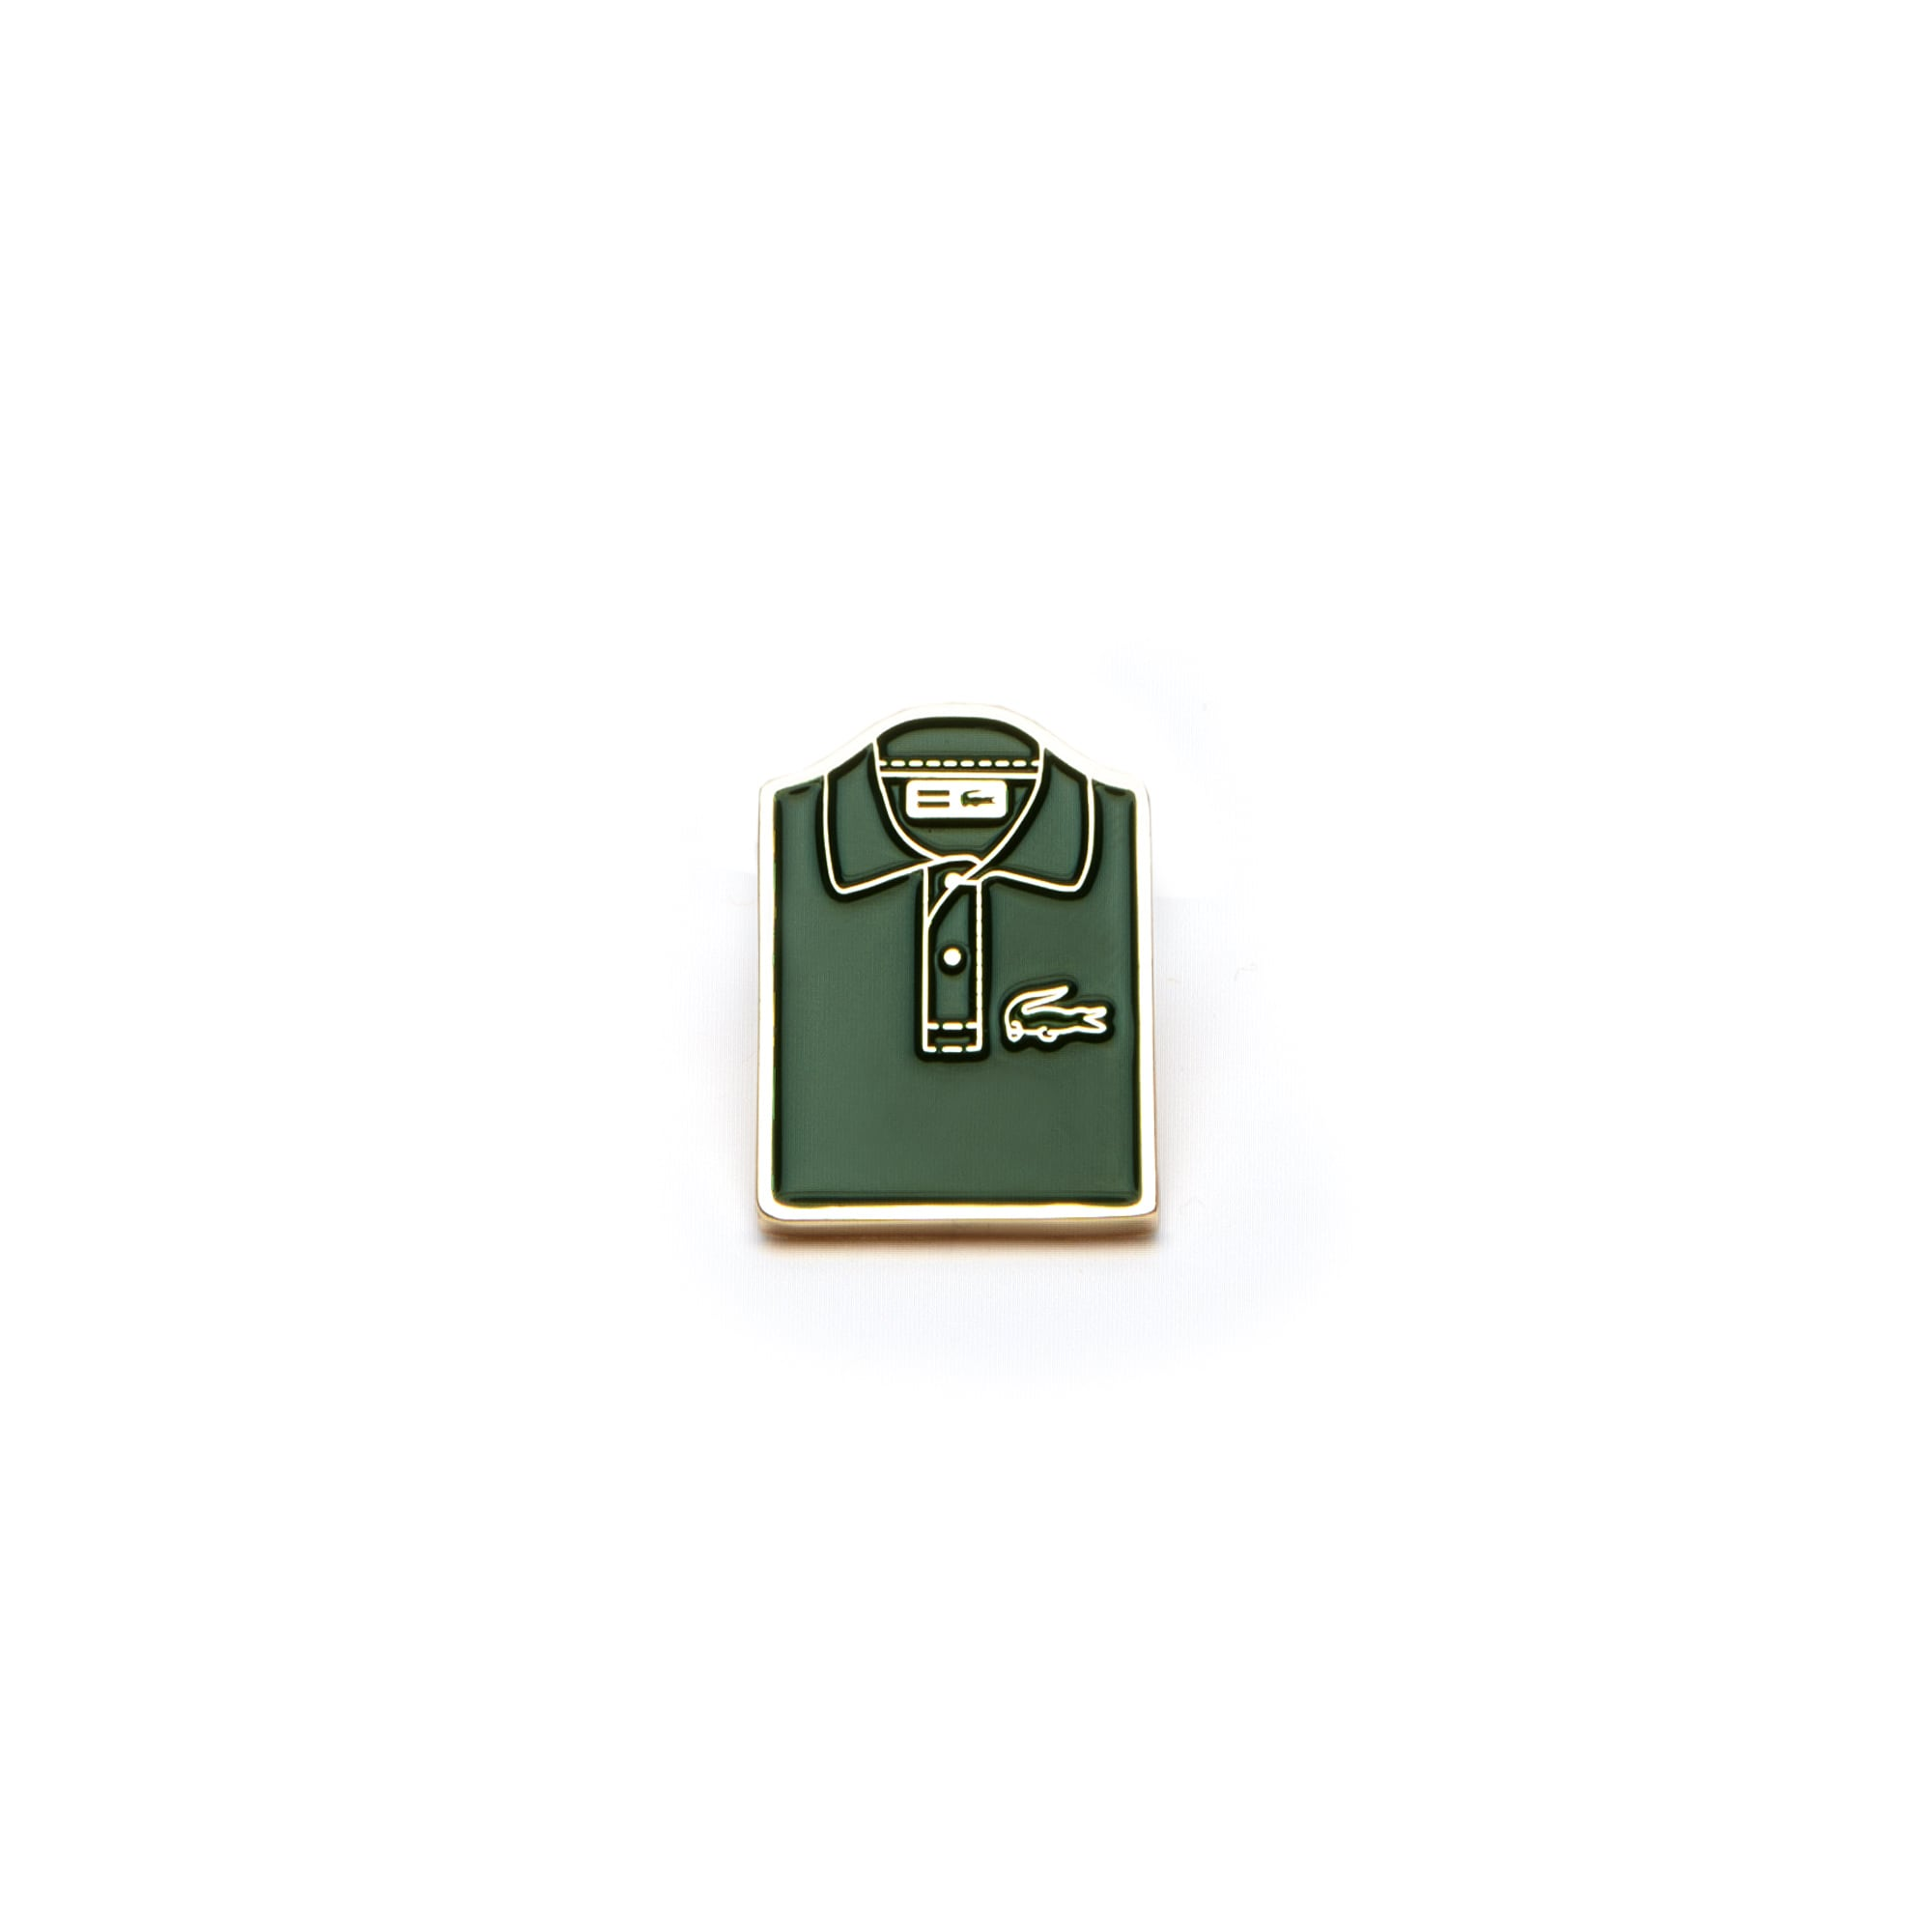 Lacoste Polo Fashion Show Pin Badge